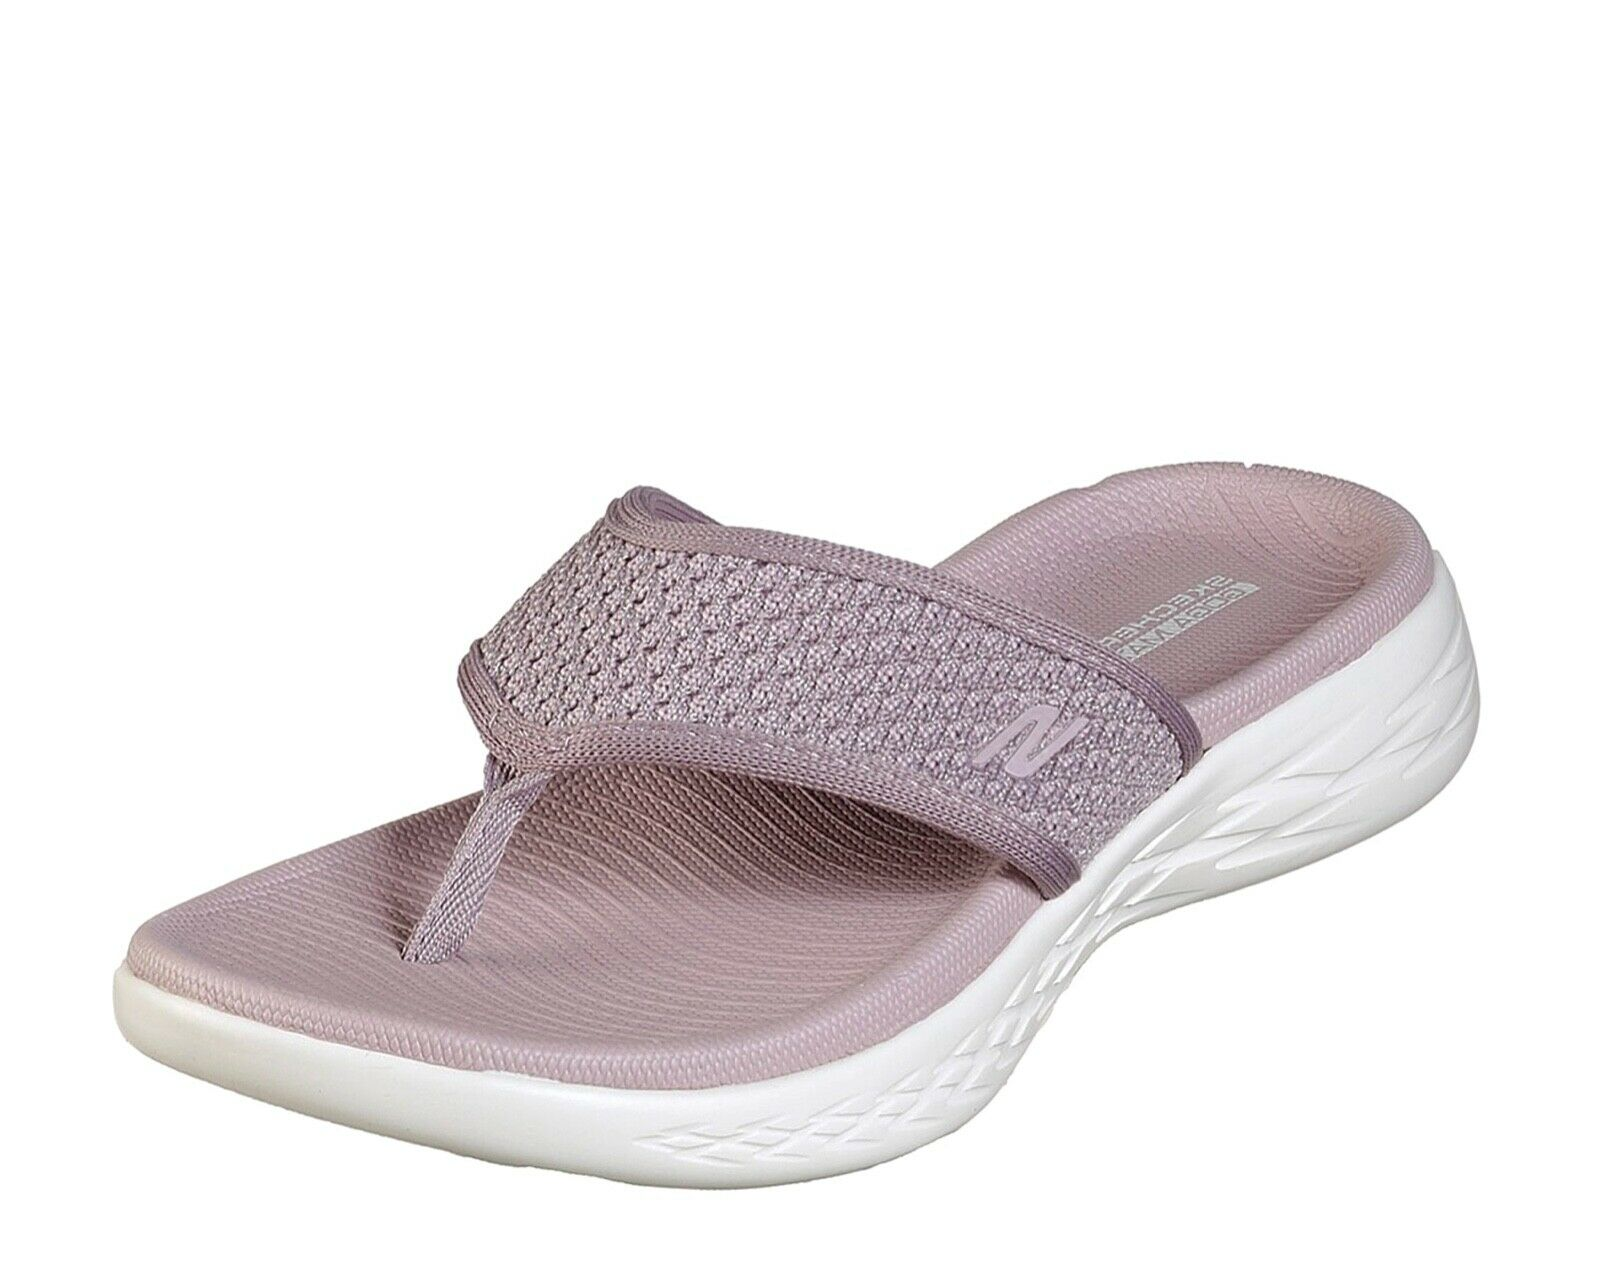 Skechers New on the go 600 BRILLANT violets Confort Sandales Tongs Tailles UK 3-9